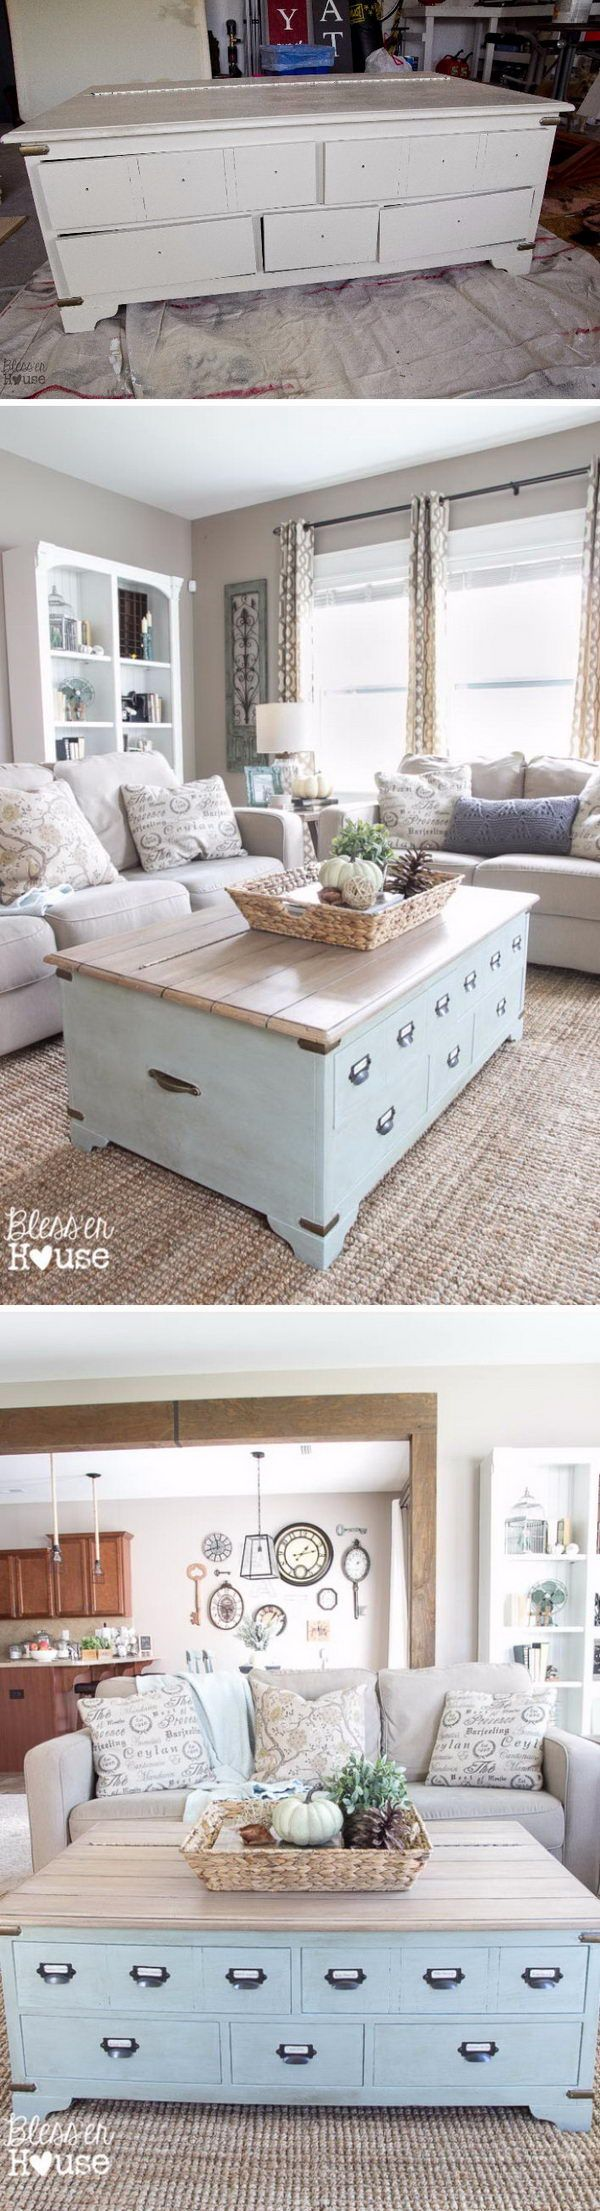 Amazing diy ideas to transform your old furniture kitchen 50 faux planked coffee table makeover from a trunk coffee table love the kitchen gallery geotapseo Choice Image